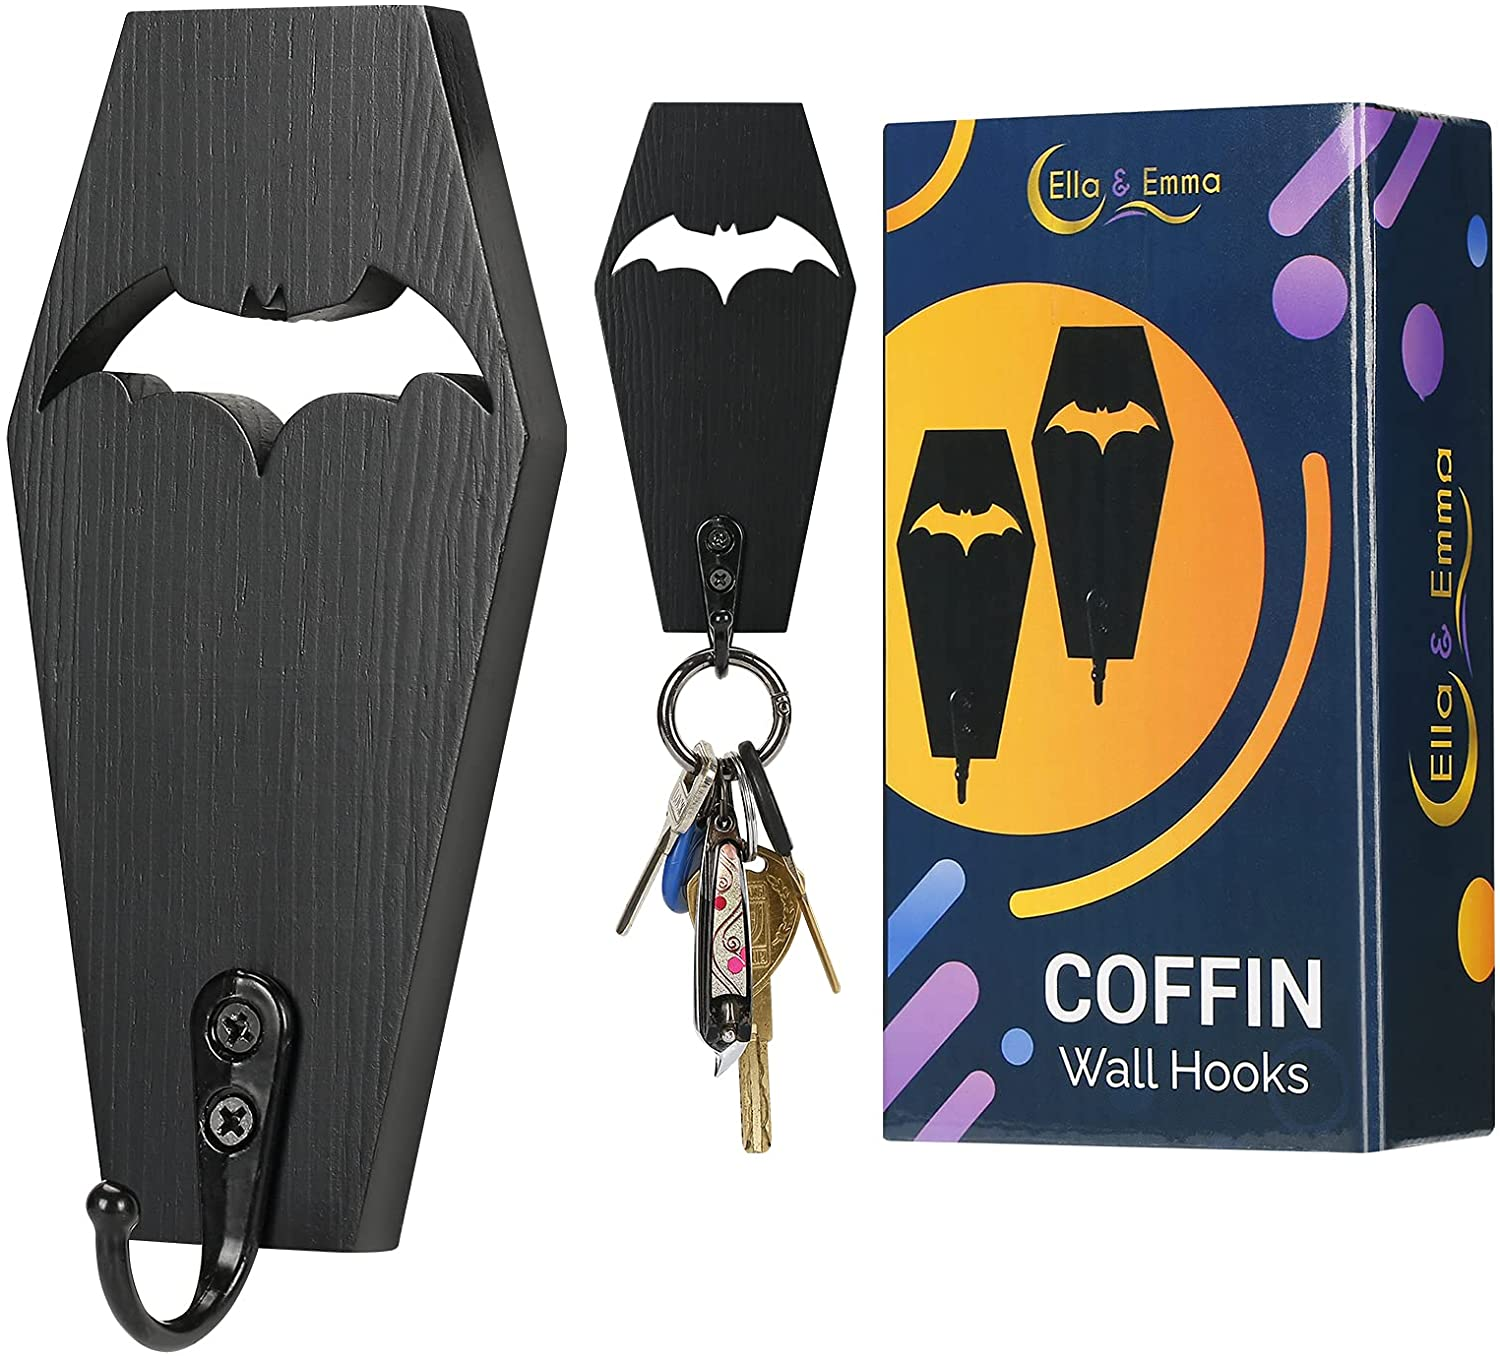 Coffin Key Holder (Pack of 2), Spooky Gothic Home Decor for Wall - Rustic Black Wooden Hanger Bat Hooks for Keys, Mugs, Purse - Wall Mounted Mini Coffin Hangers Decoration for Bat Shelf, Coffin Shelf